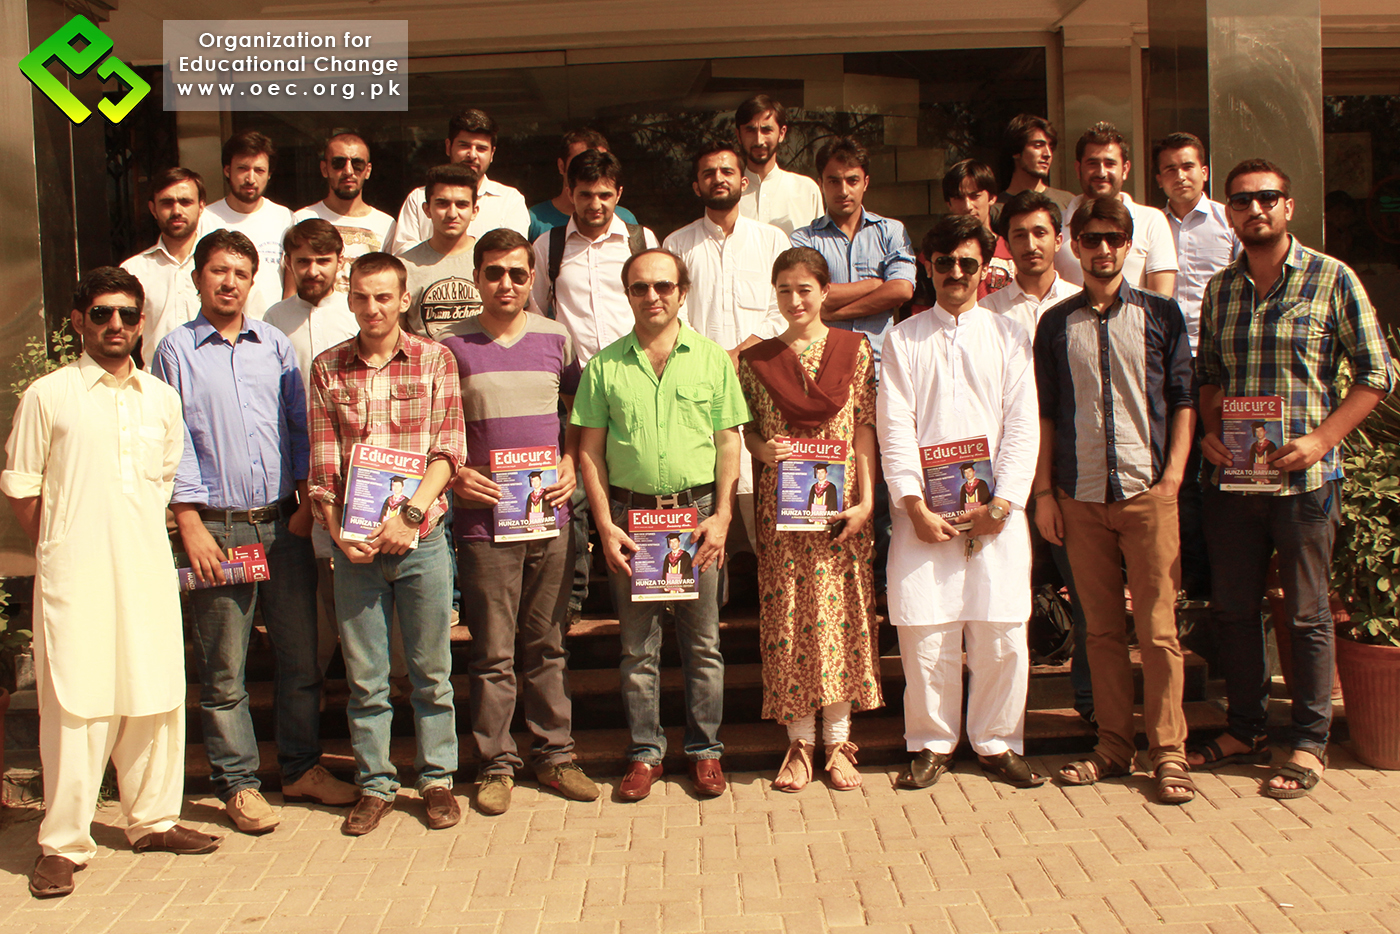 Group photo after the 4ht OEC Oath Taking Ceremony